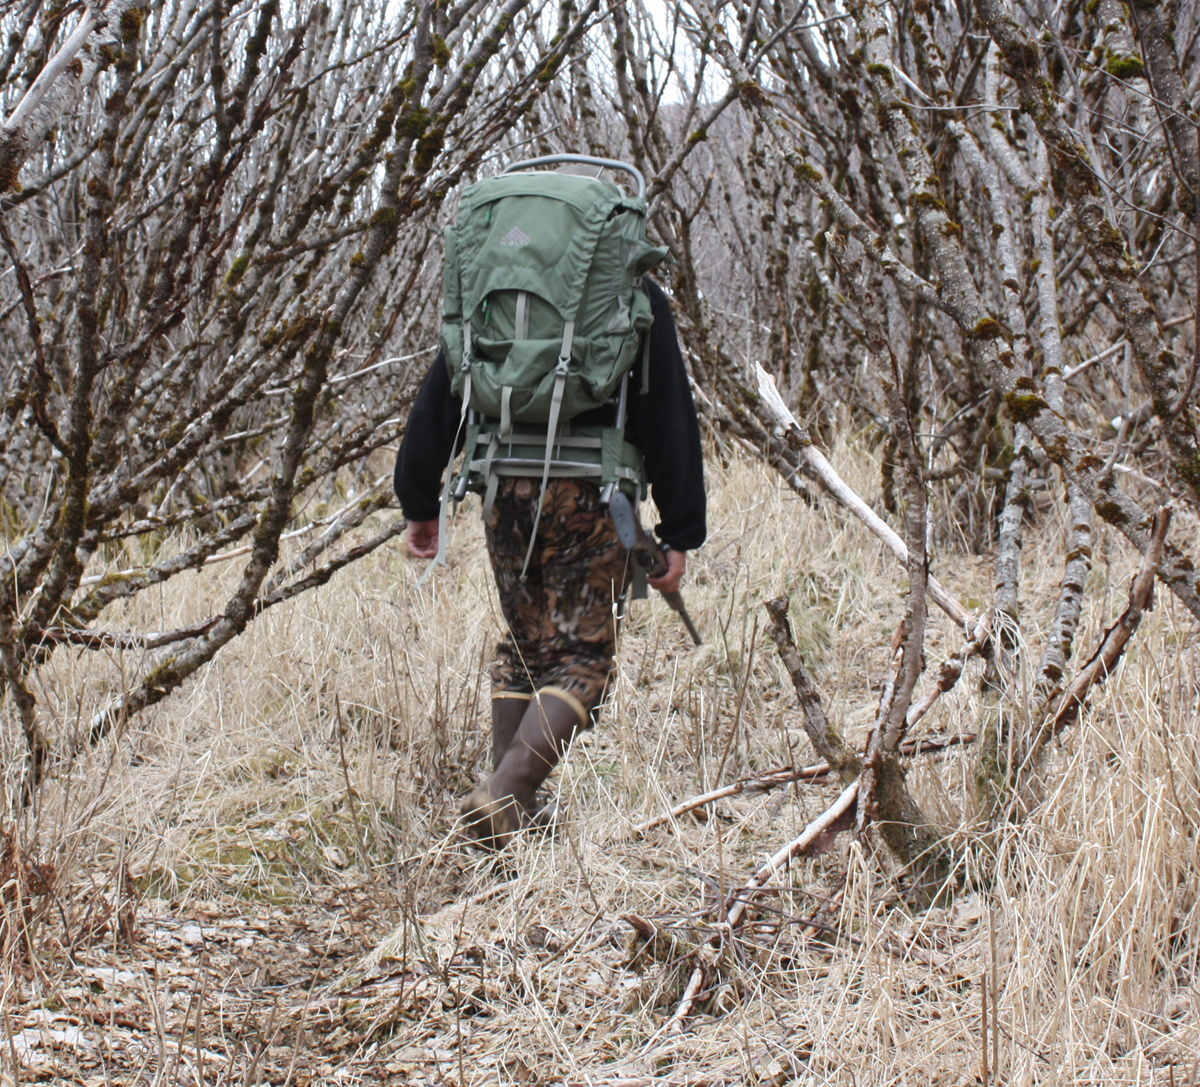 Kodiak-Monster-Walking-through-the-Alders